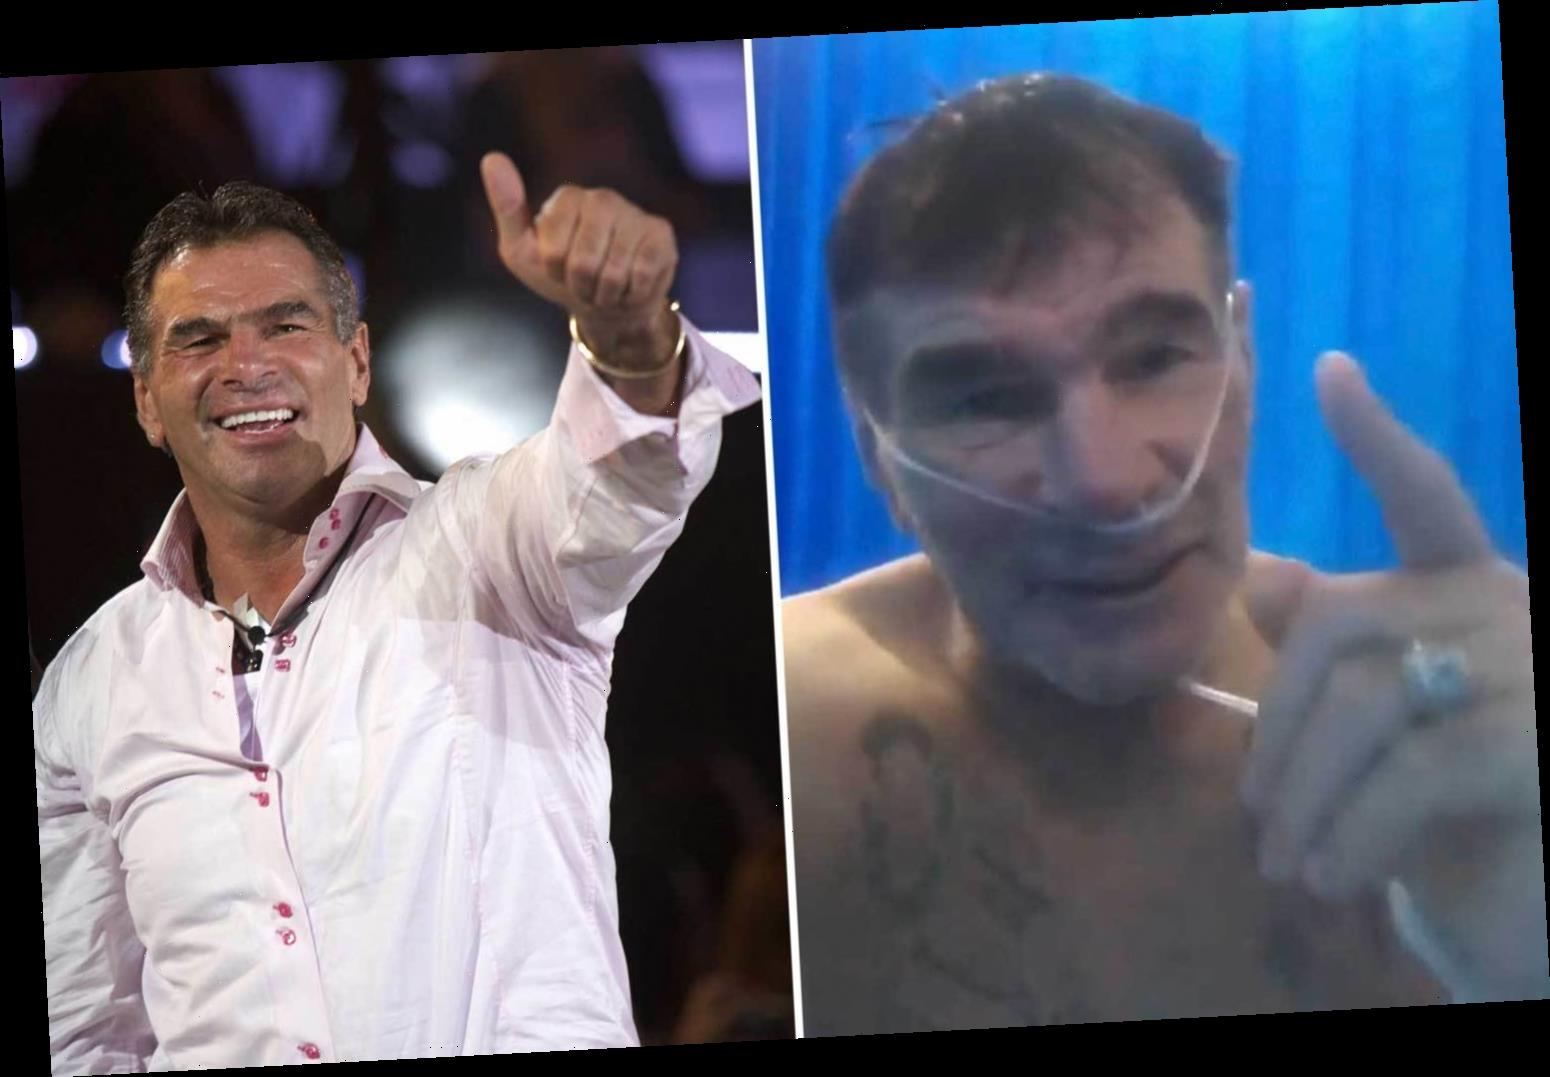 Covid-hit Paddy Doherty warns virus is 'no joke' in shocking video after hospital dash